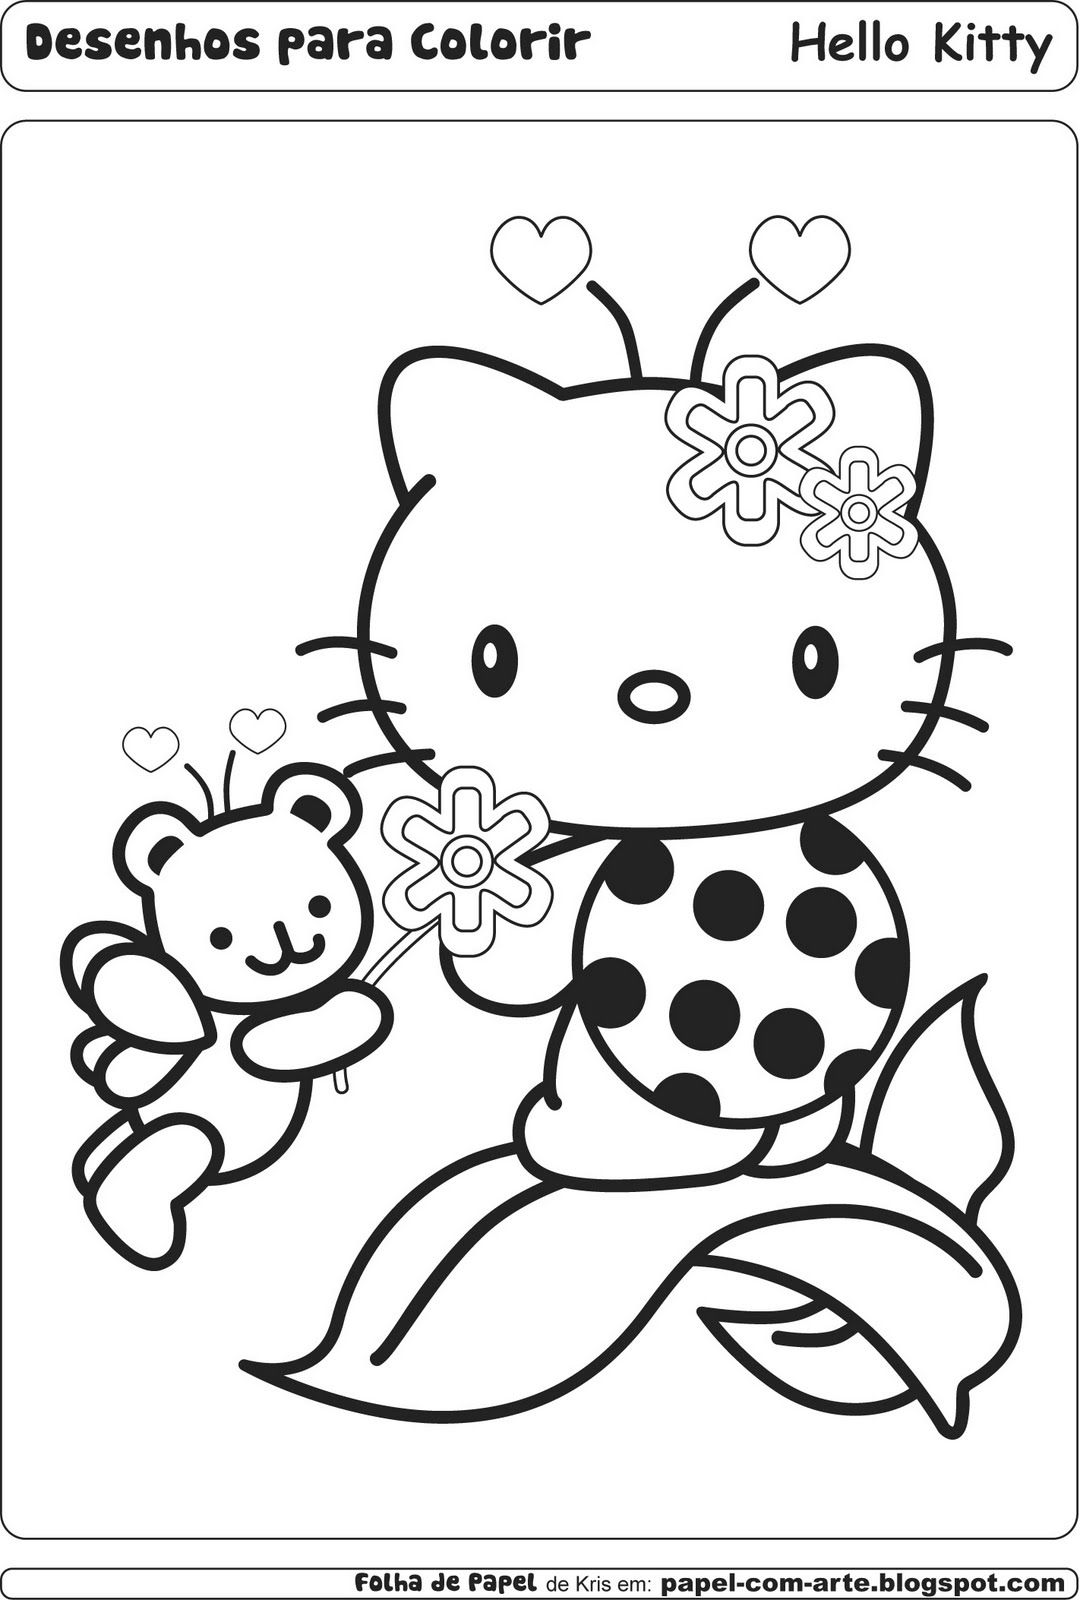 Hello kitty games on dressupgirlus coloring book favor coloring book favor summer coloring pages